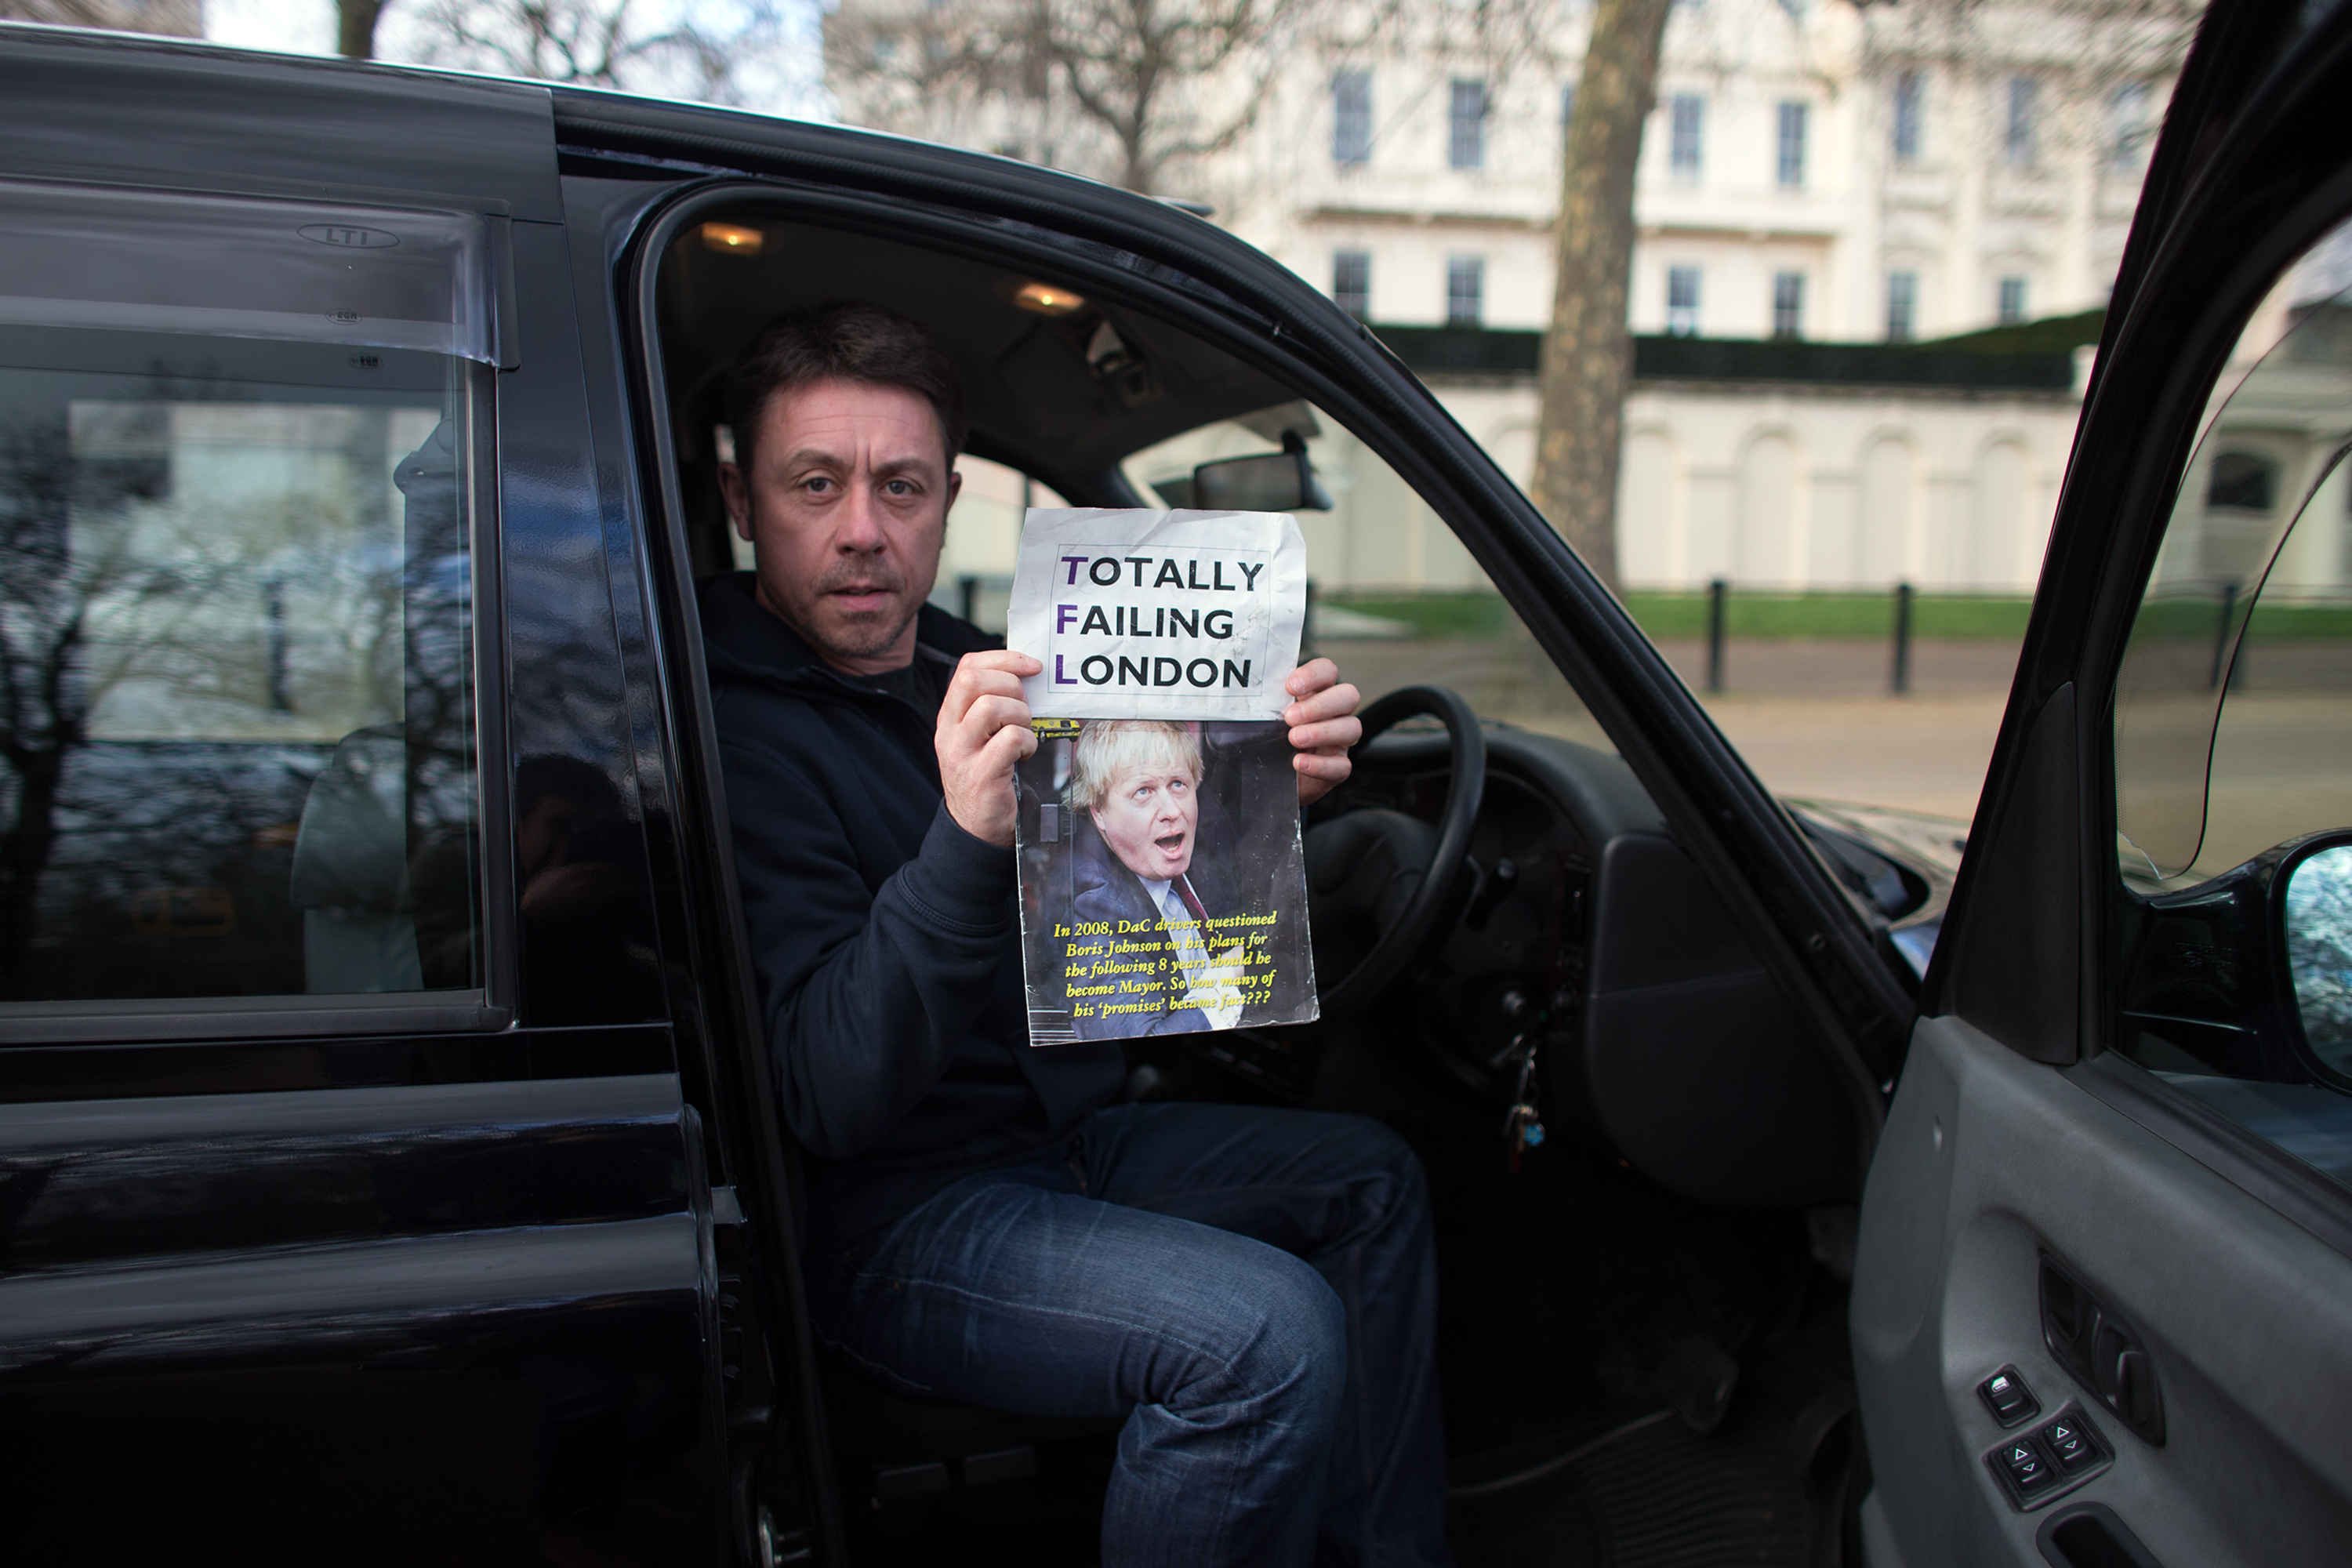 London taxi drivers fear companies such as Uber are pricing them out of the market.